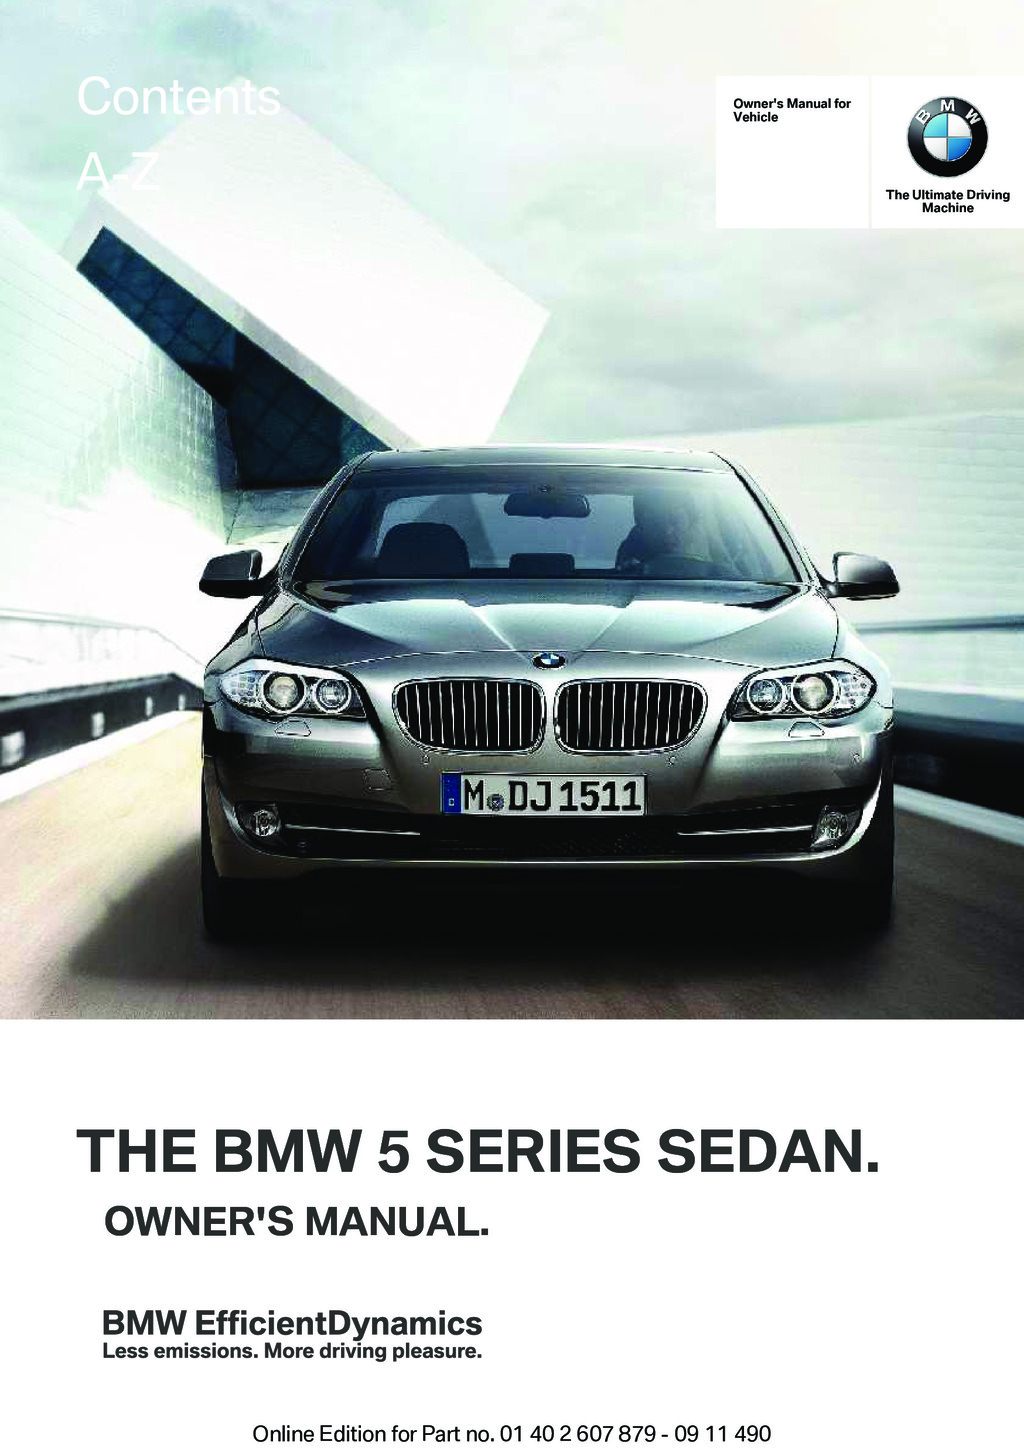 2012 BMW 5 Series owners manual